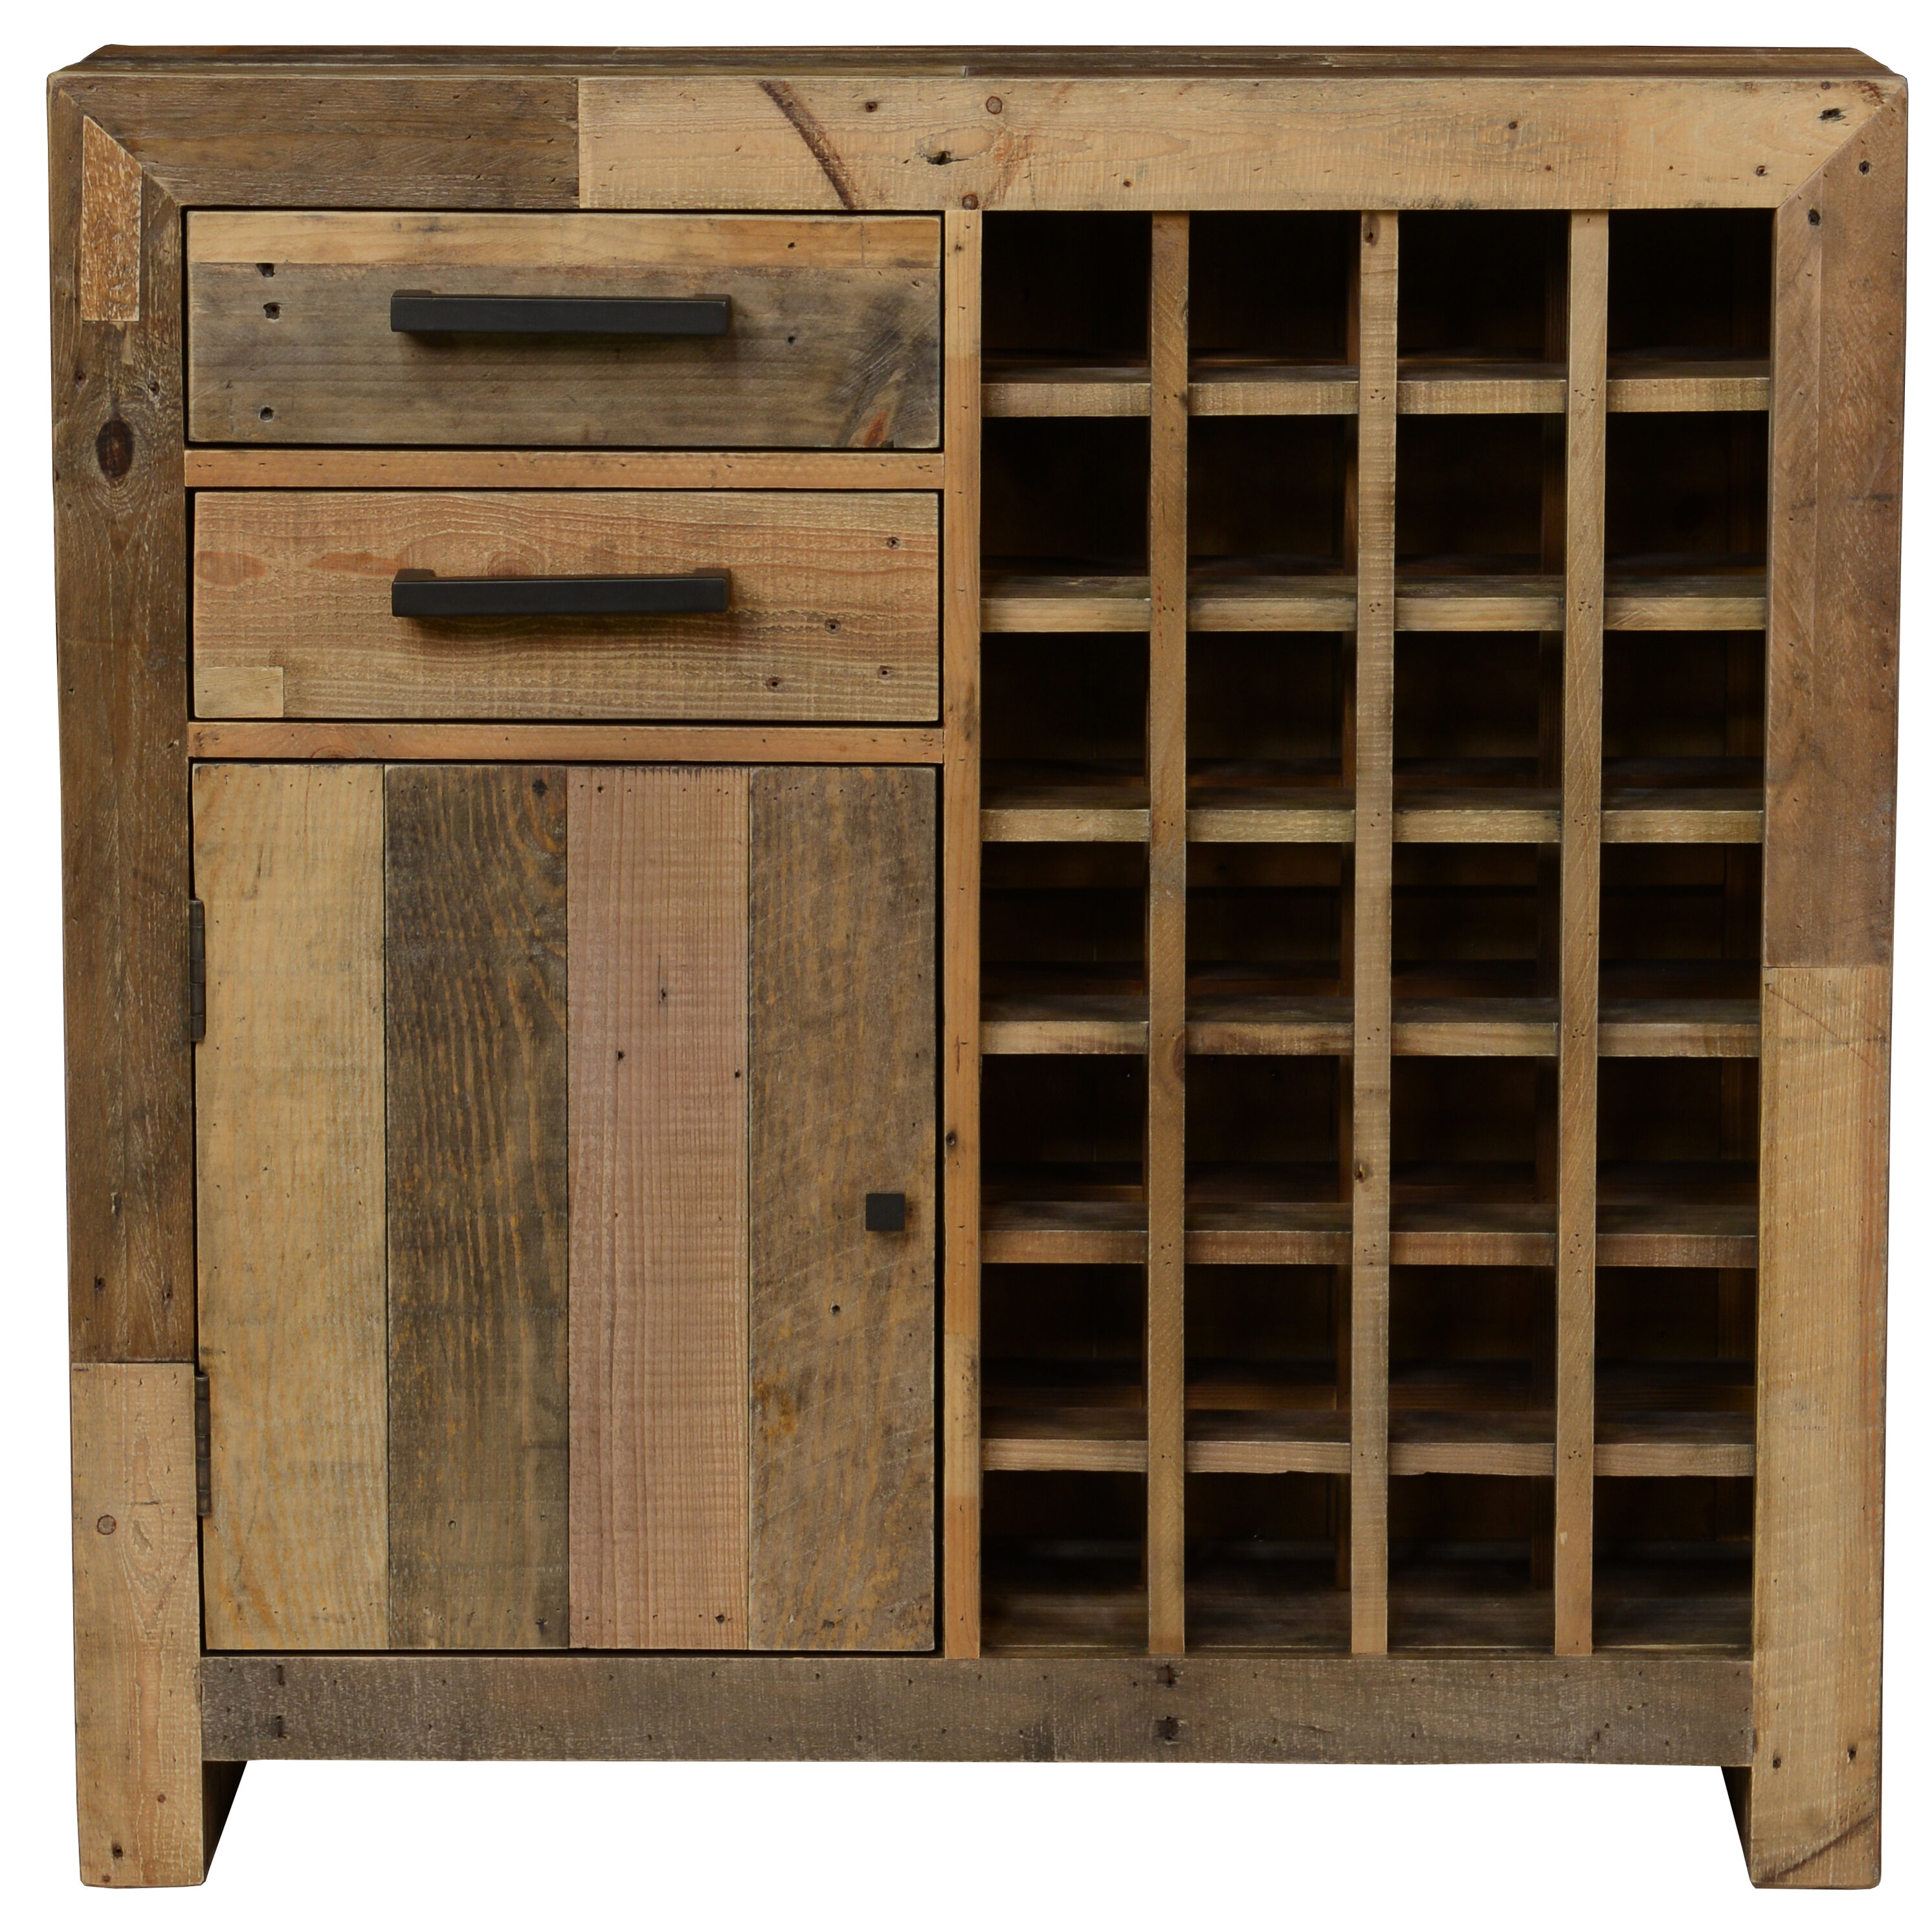 rustic wine or storage bar ideas room furniture restoration plans size cabinet refrigerated walmart vintage coolers small liquor of hardware cabinets full buffet kitchen